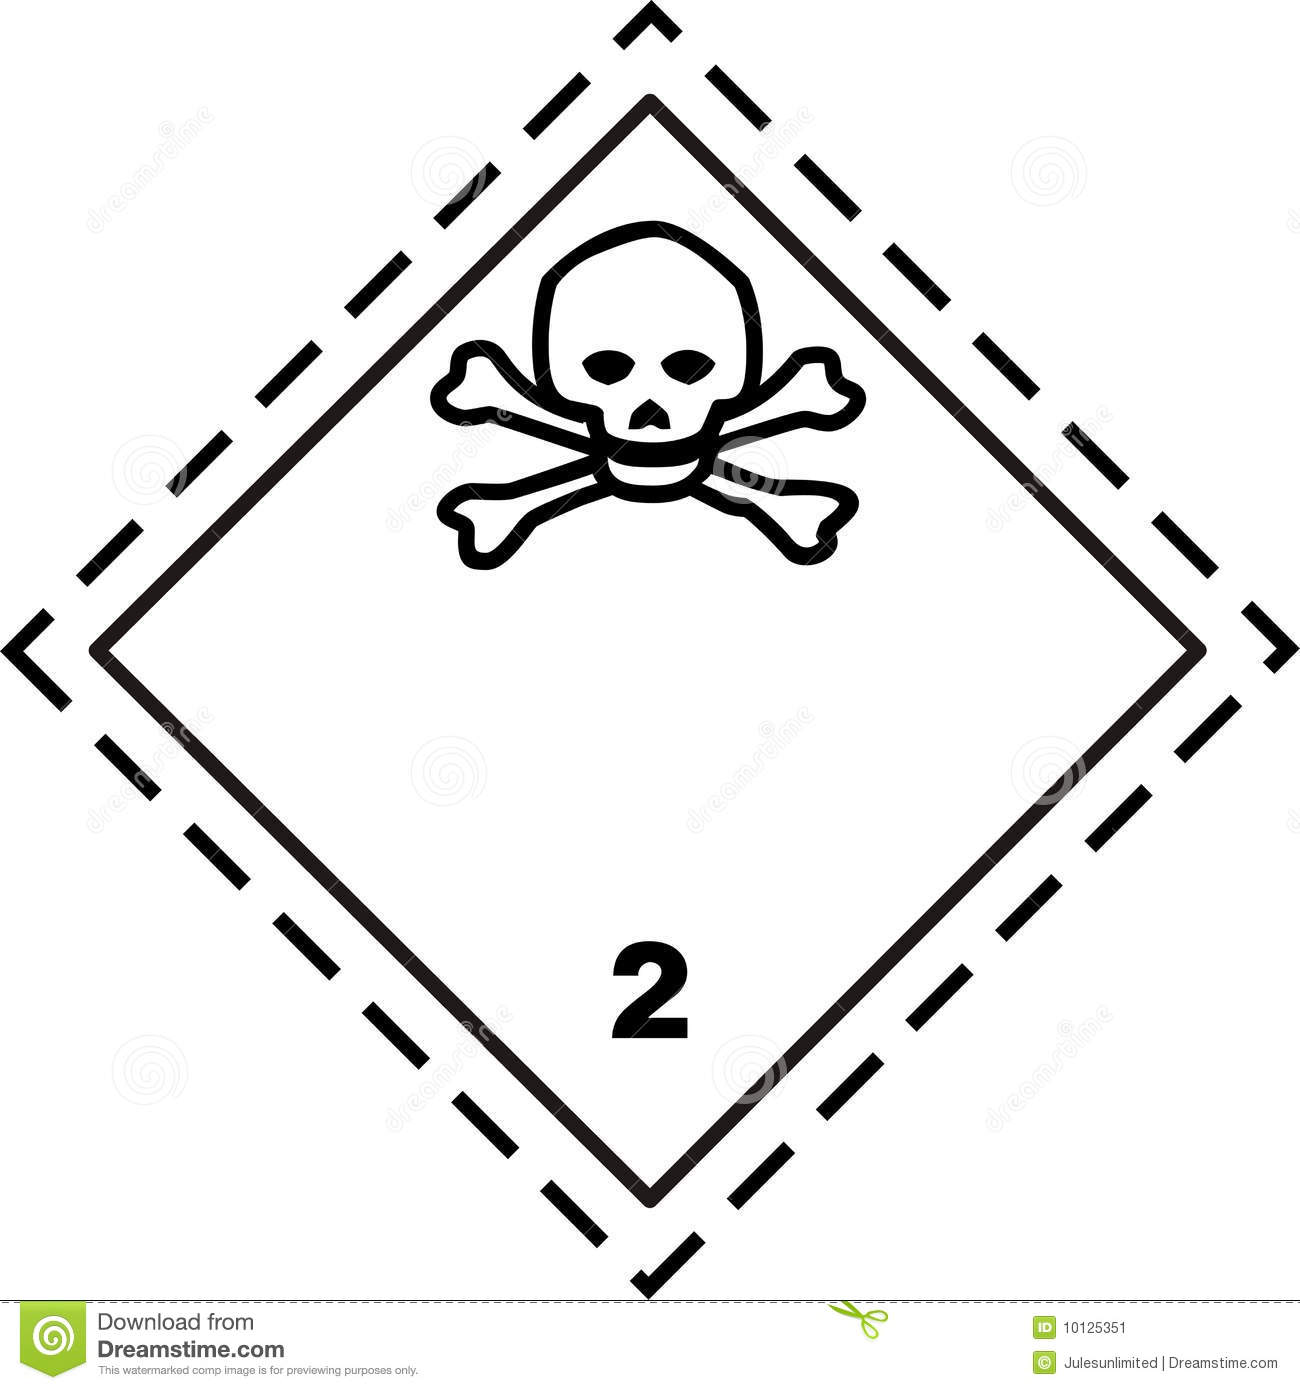 Toxic gas safety placard stock vector illustration of bombs royalty free stock photo biocorpaavc Images